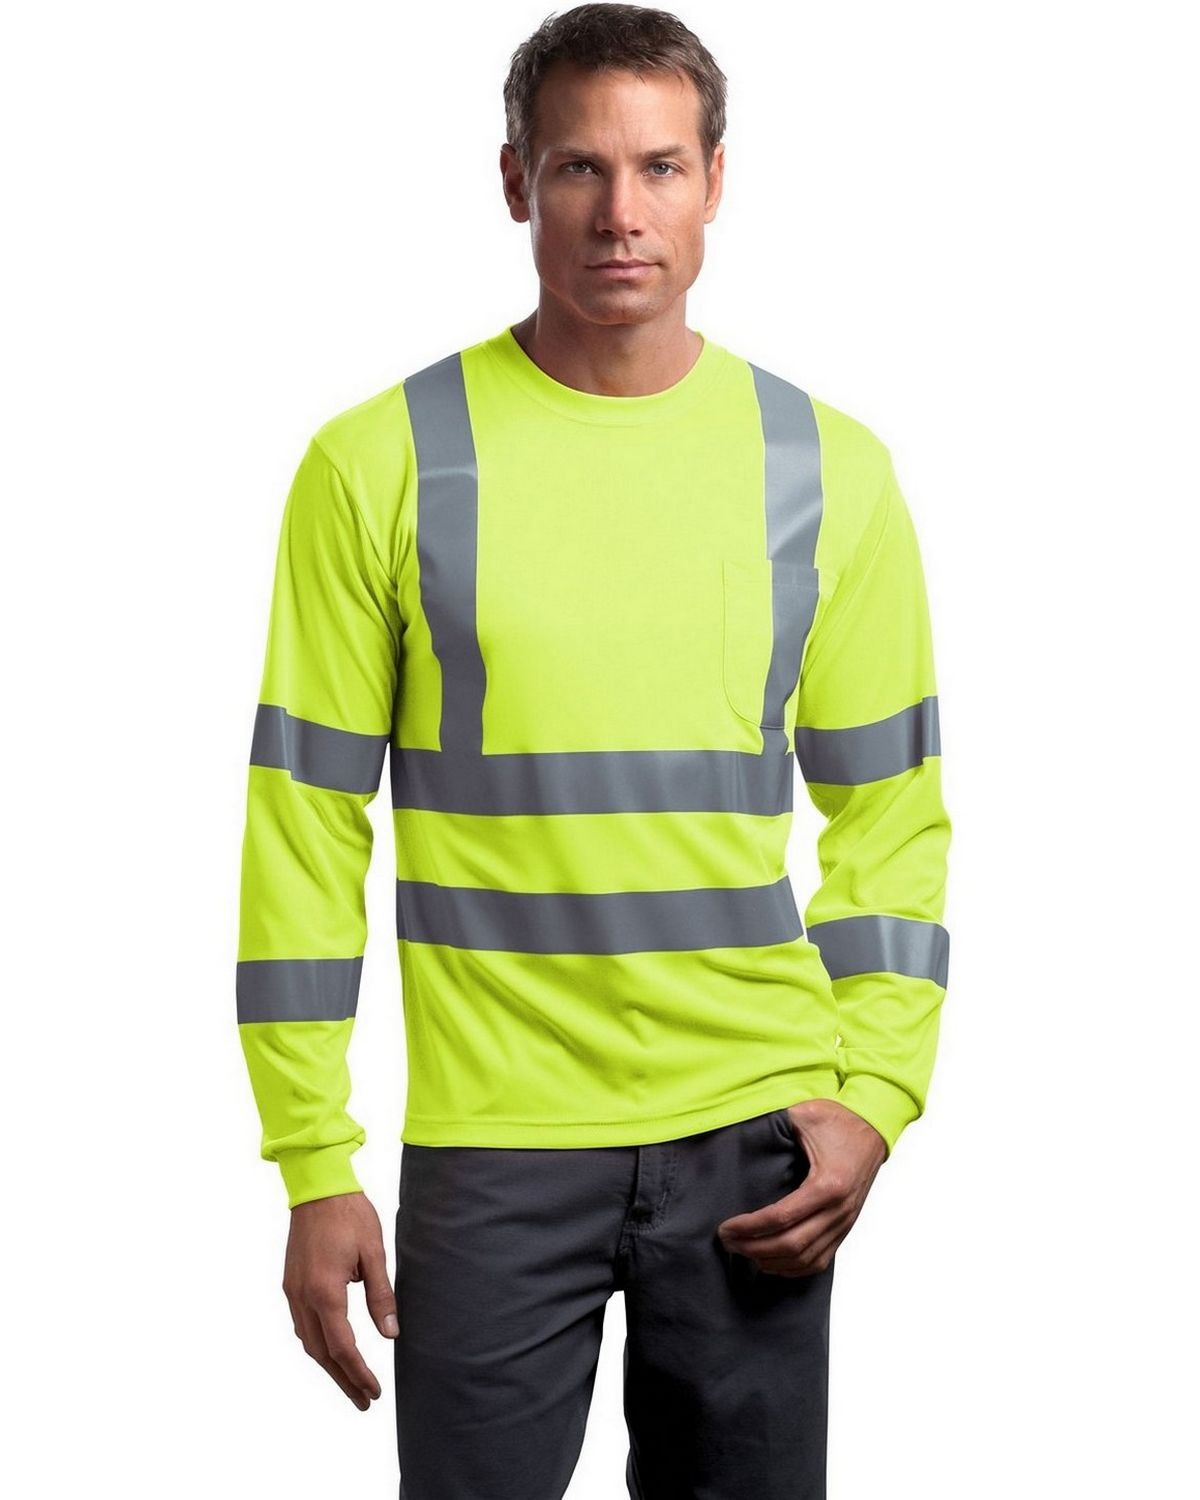 Buy Cornerstone Cs409 Ansi Class 3 Long Sleeve Snag Resistant